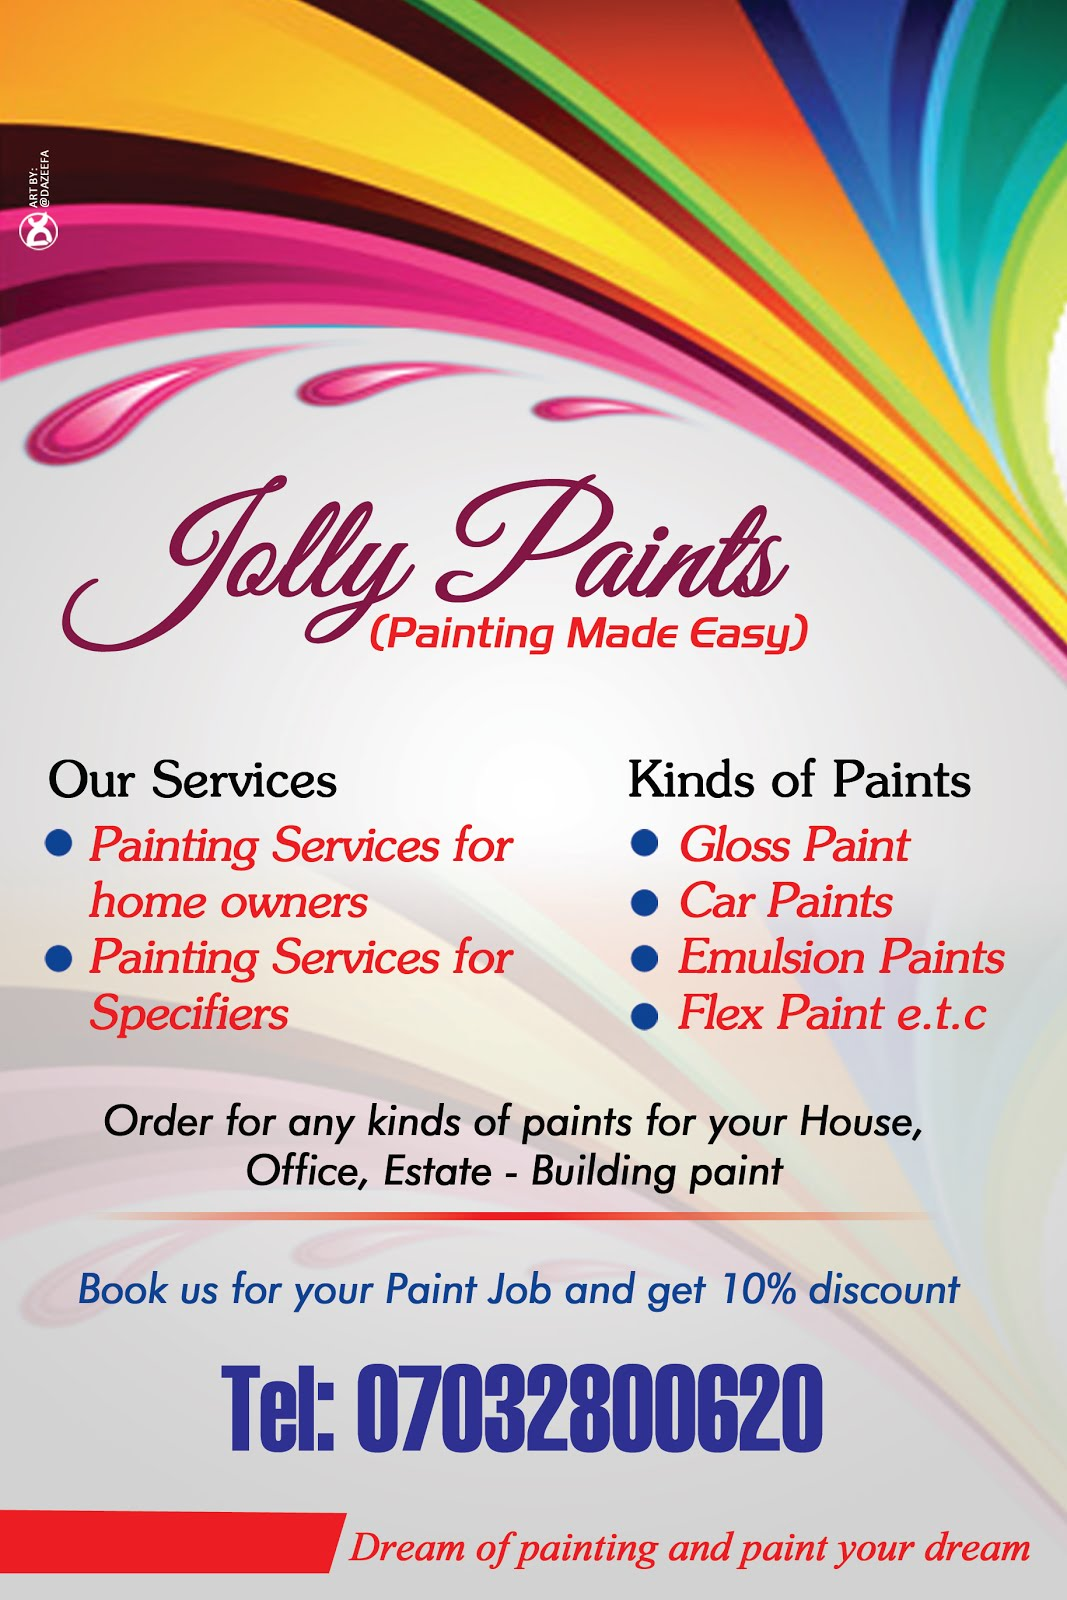 Jolly Paints